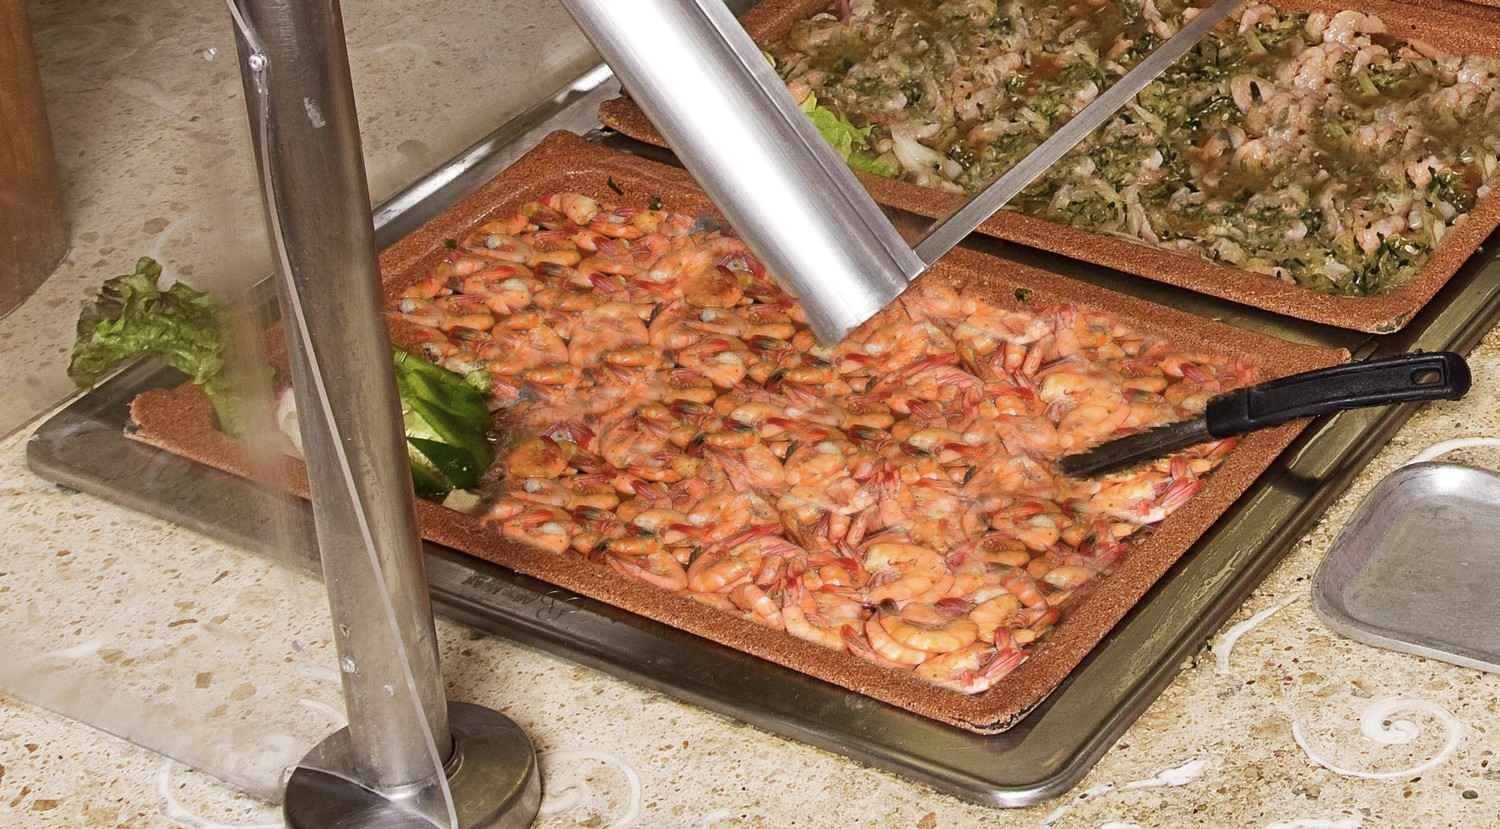 A large pan of fresh shrimp at a restaurant in Playa Del Carmen.